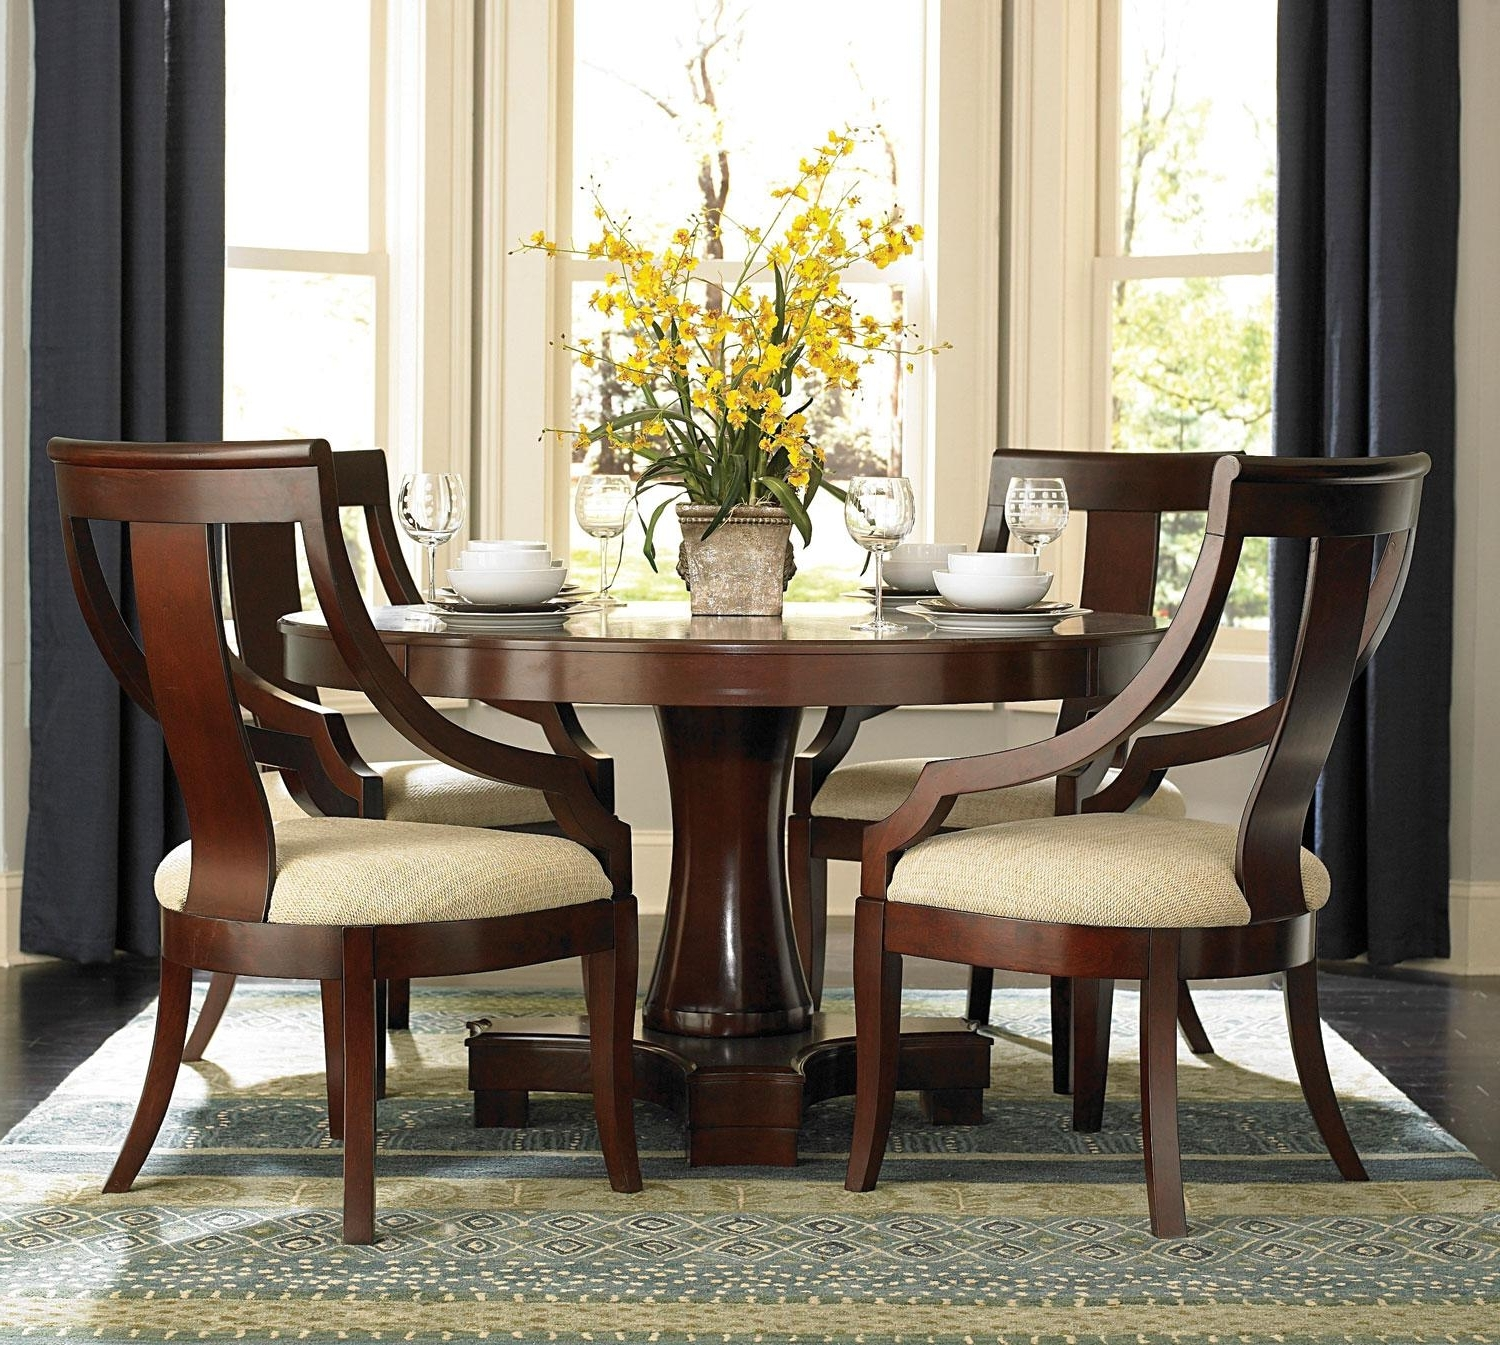 2018 Black Extendable Dining Tables Sets Intended For Dining Room Dark Wood Table Big Dining Room Table Black Dining Table (View 19 of 25)